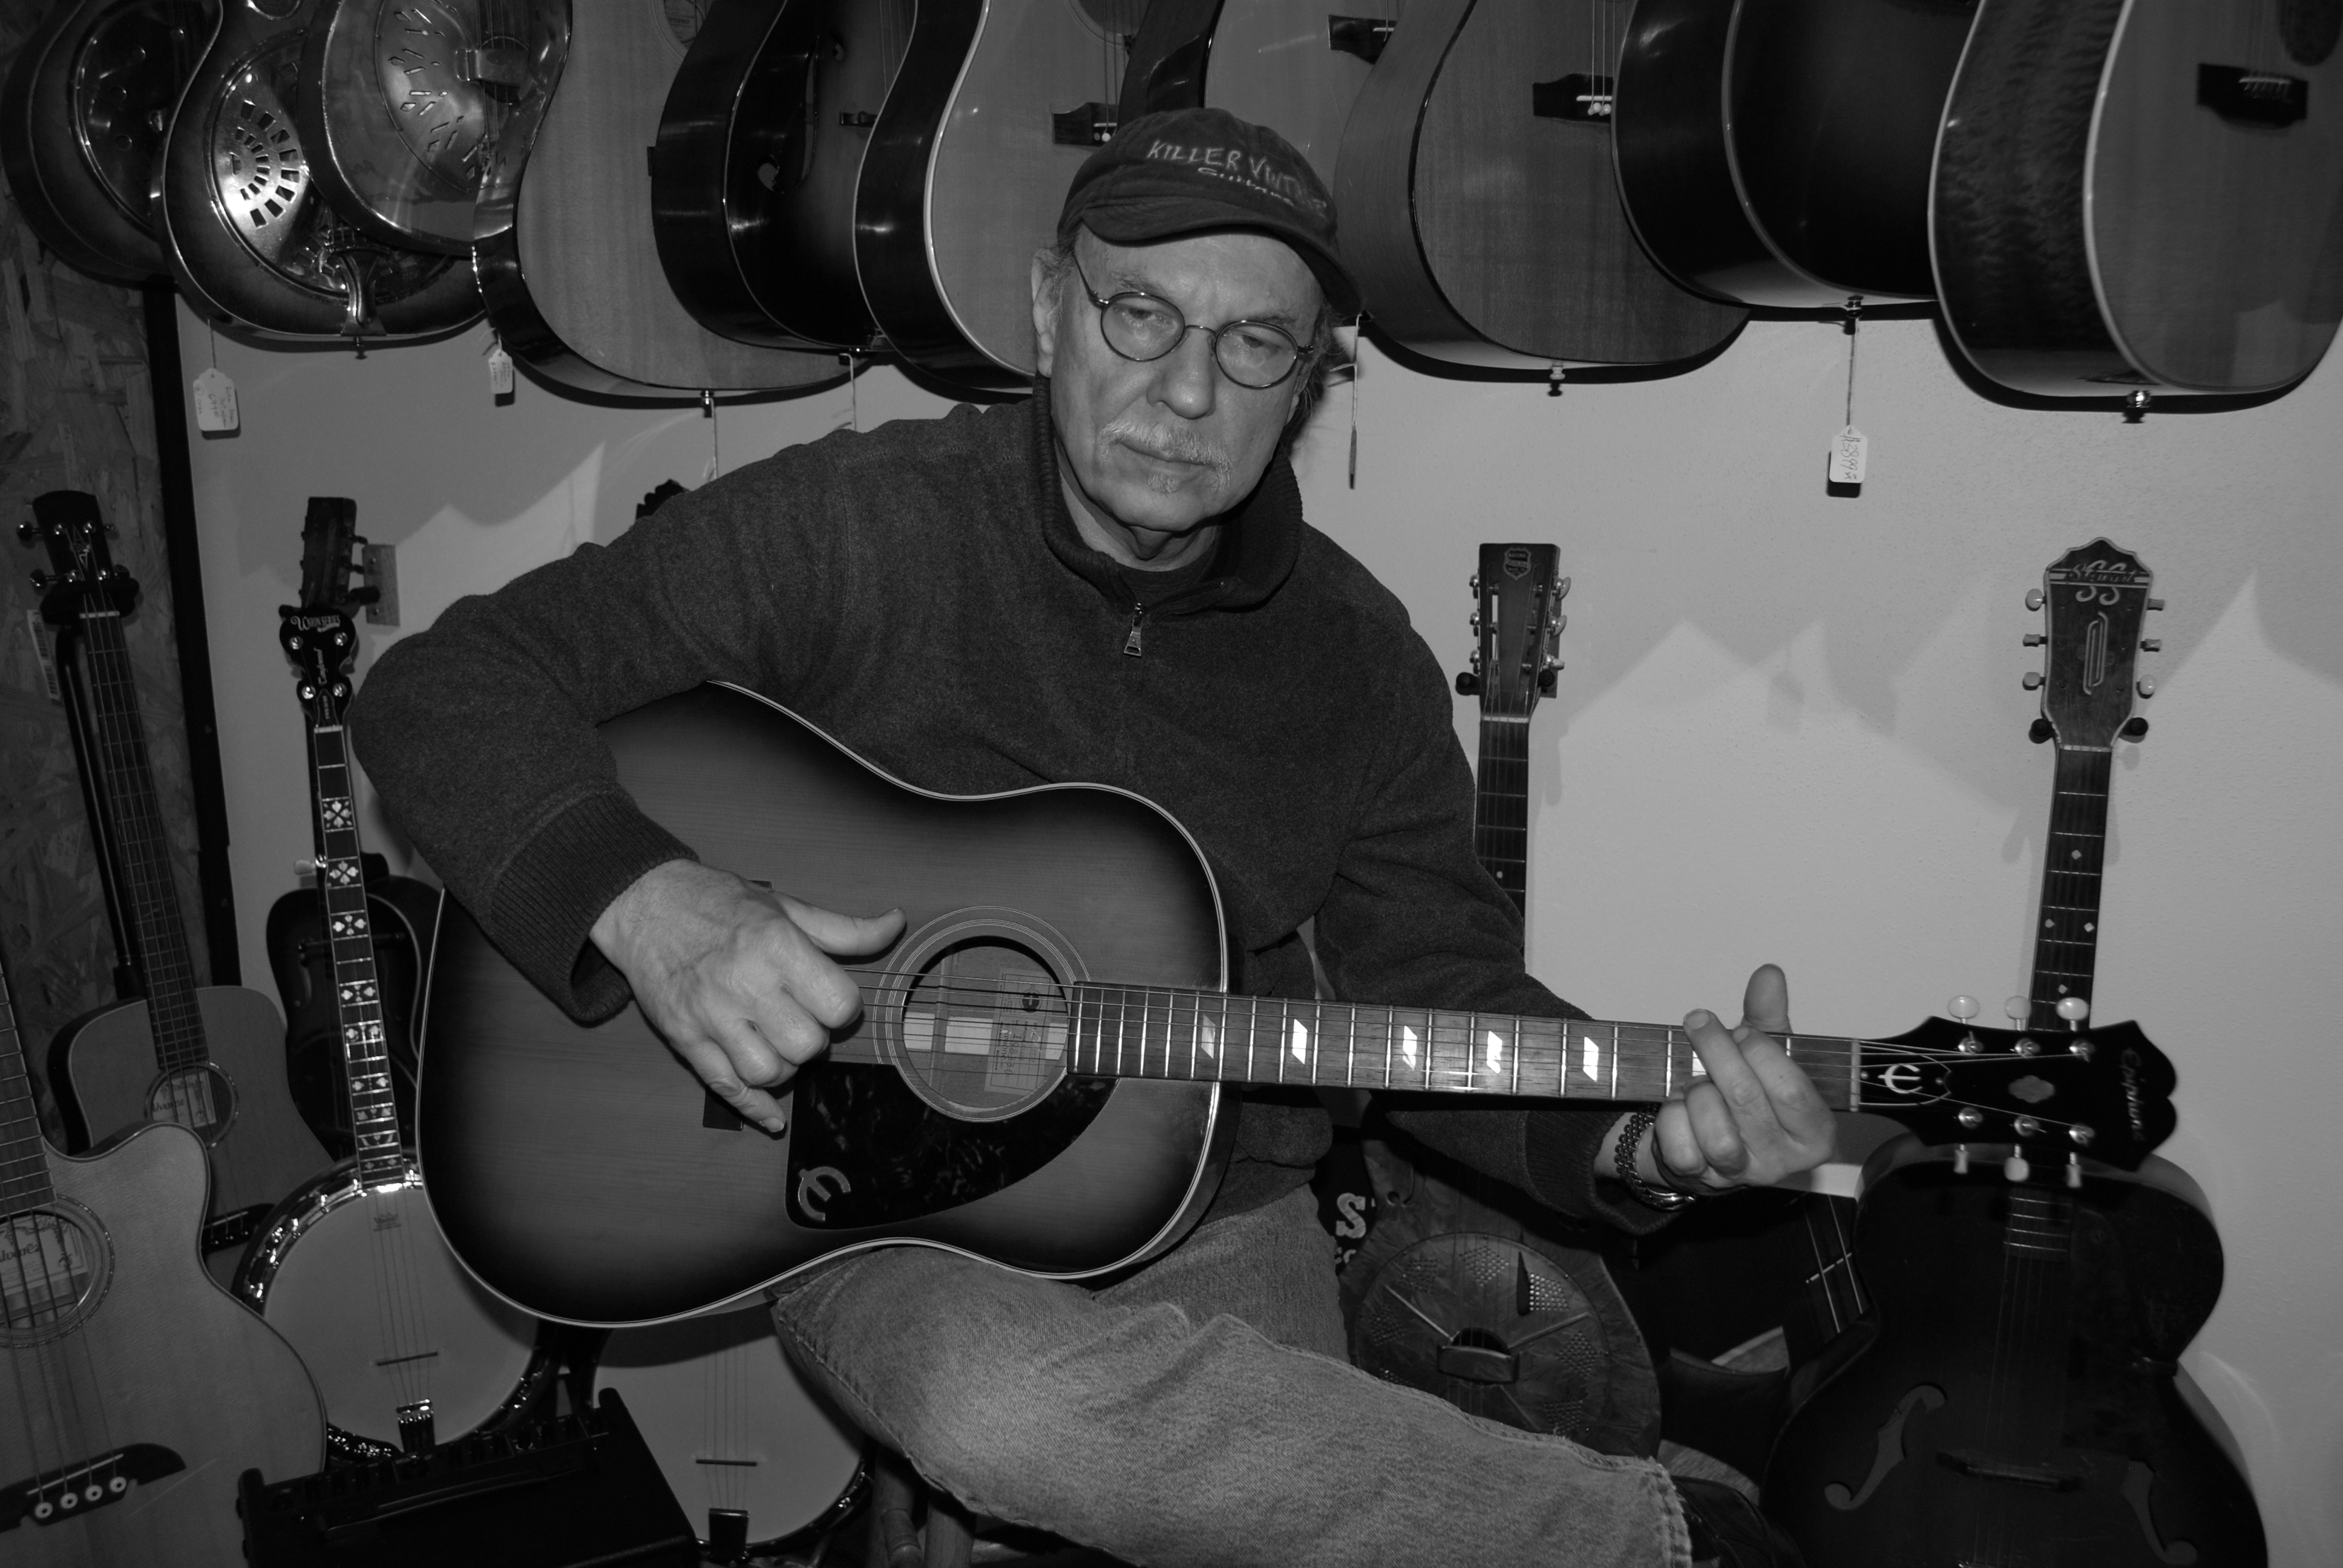 Dave Hinson, owner of Killer Vintage, specializes in appraising, buying and selling of electric and acoustic guitars. PHOTO | DENNIS W. PARKS